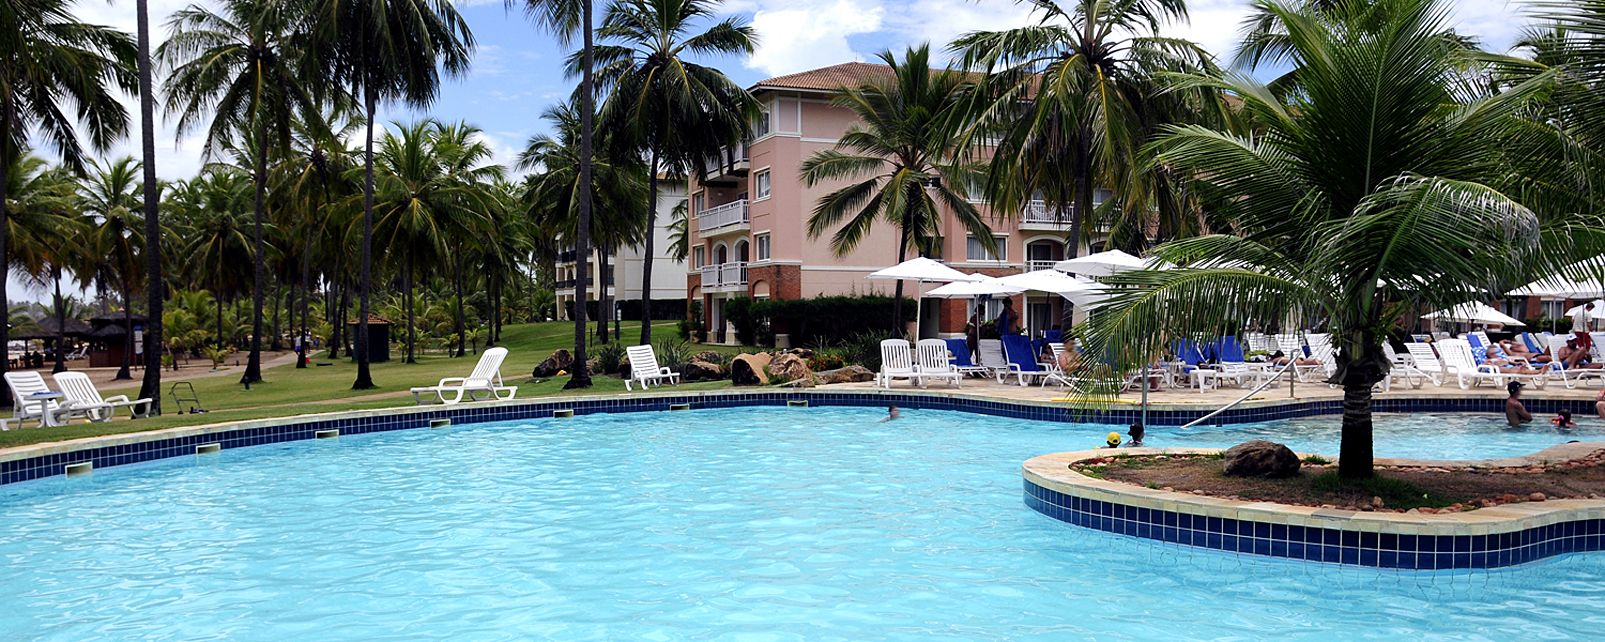 Hotel Costa do Sauipe Premium